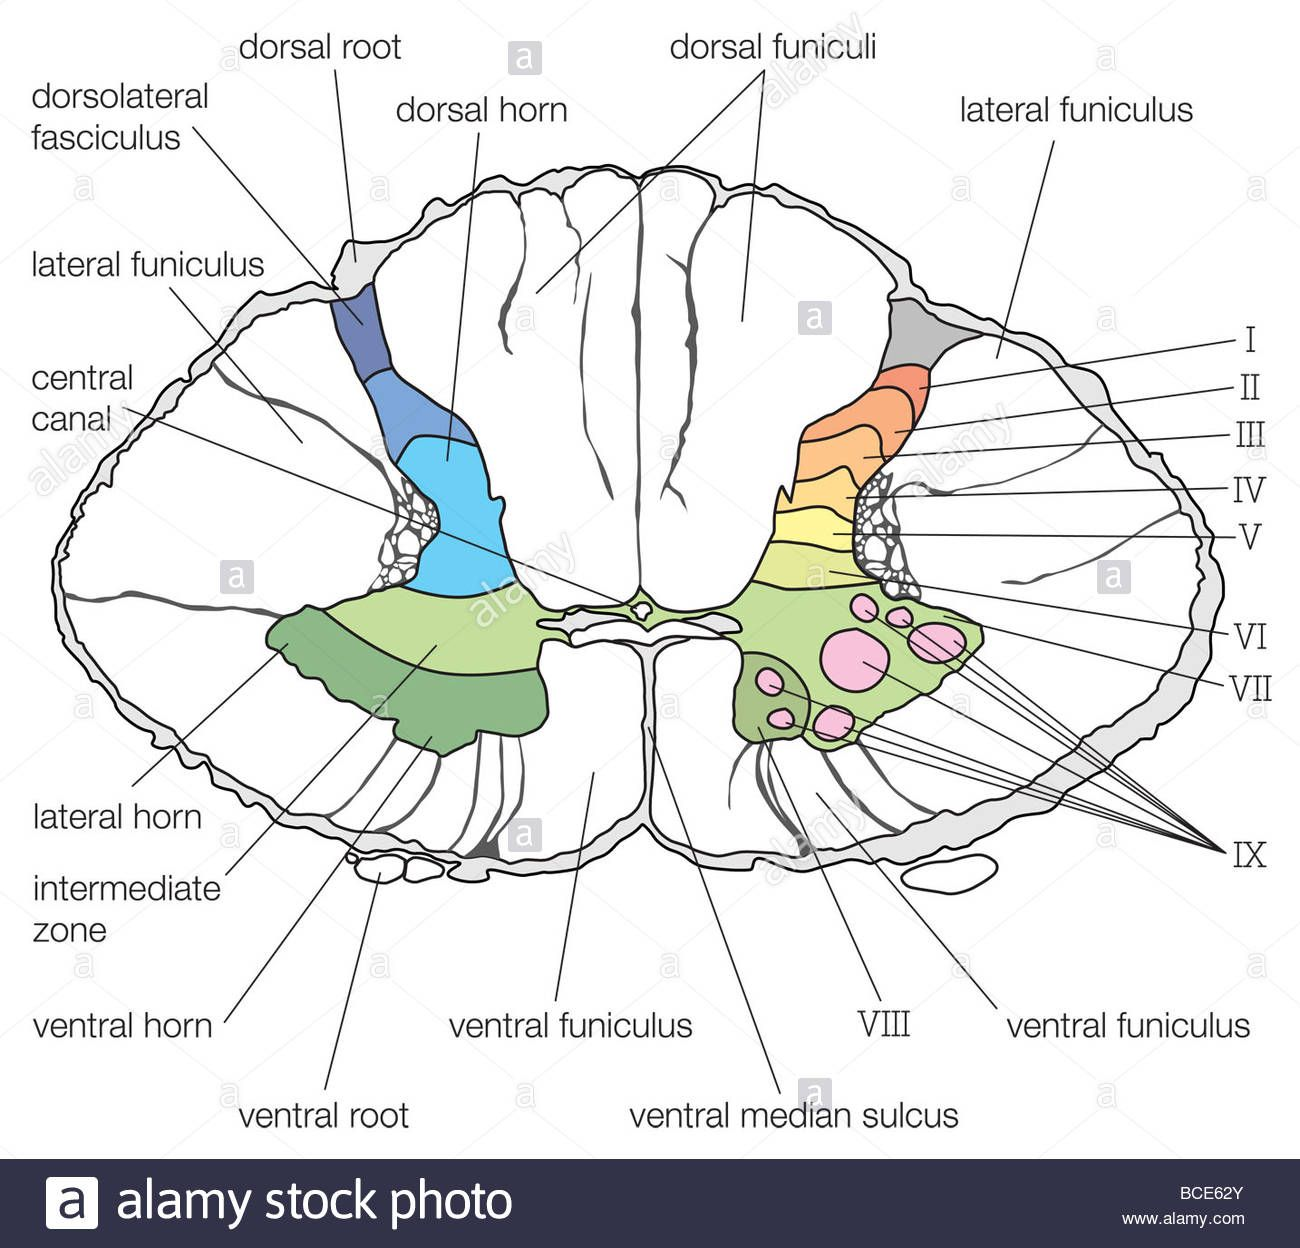 Vertebrae Cross Section Diagrams Labeled - House Wiring Diagram ...